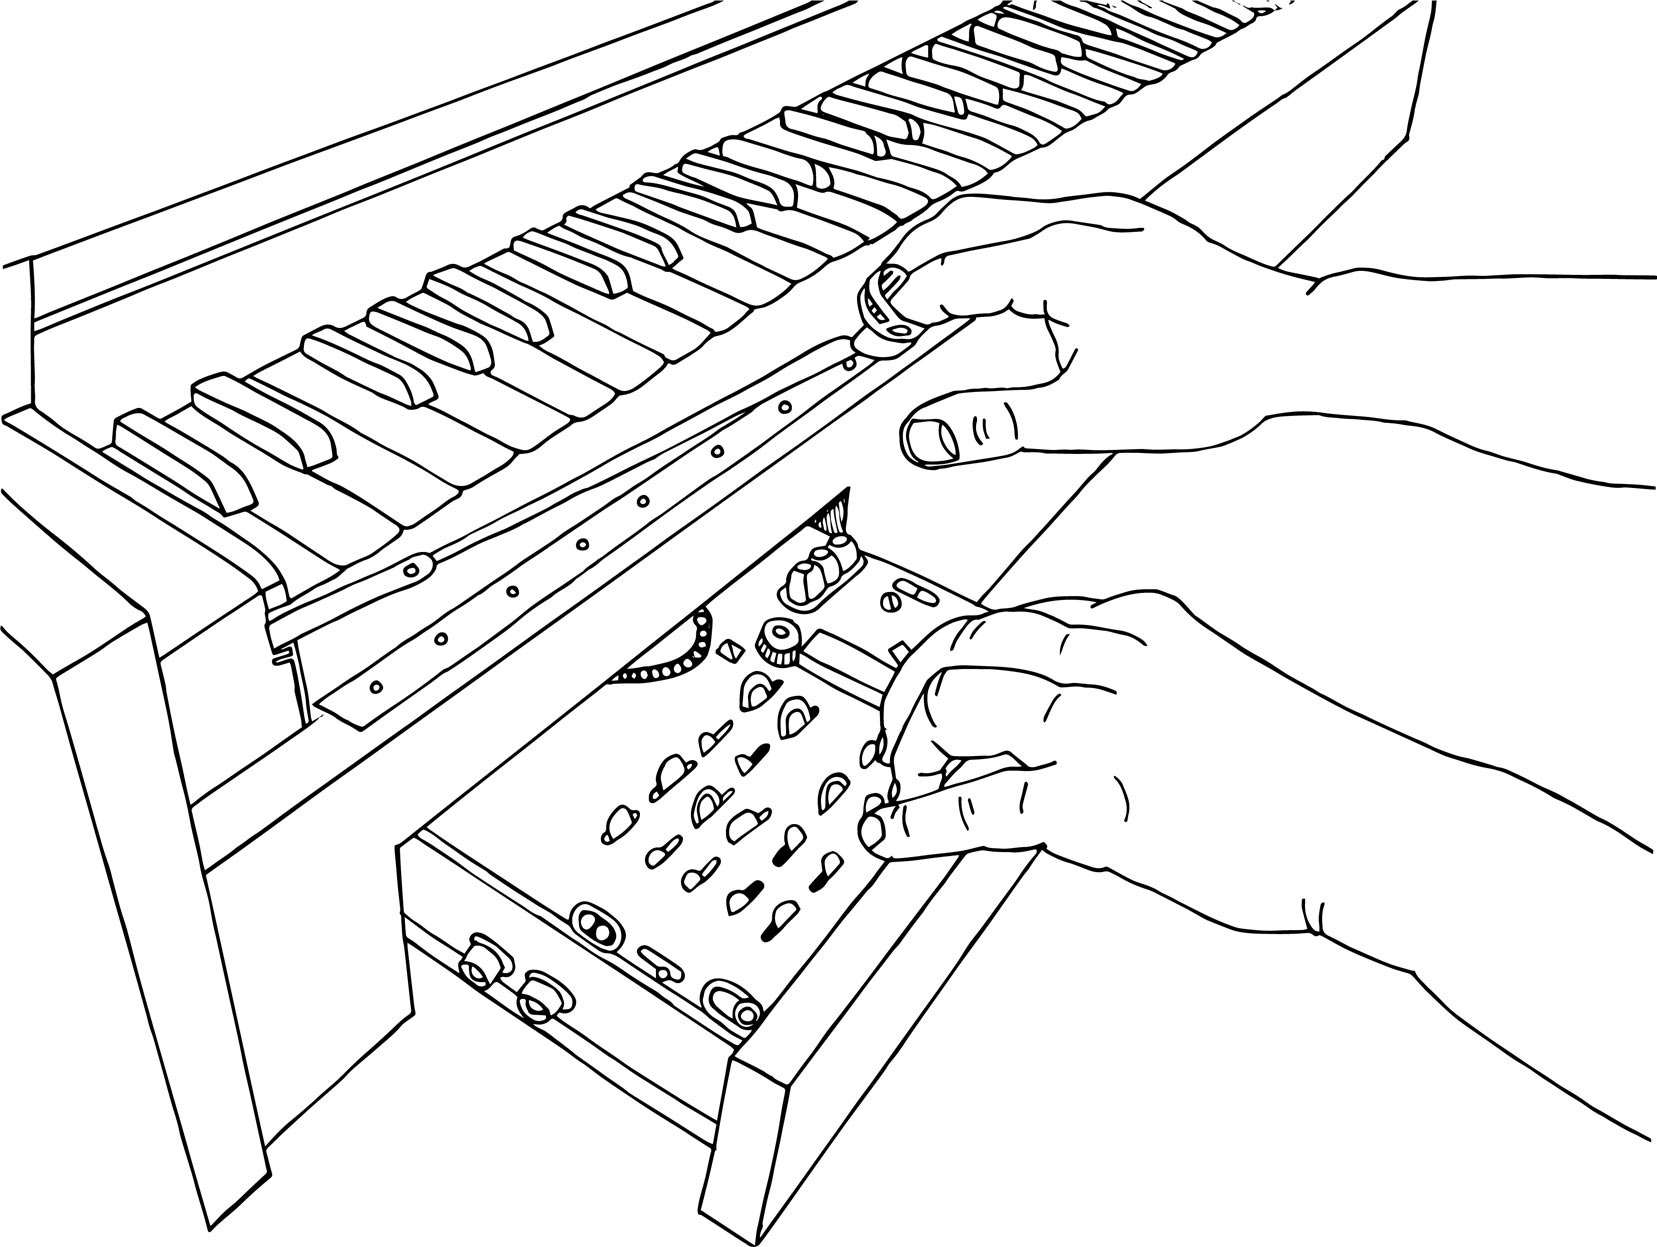 A pair of hands play the ondes martenot, an early electronic instrument. It has an eerie, yet sincere phrasing, similar to that of a theremin.